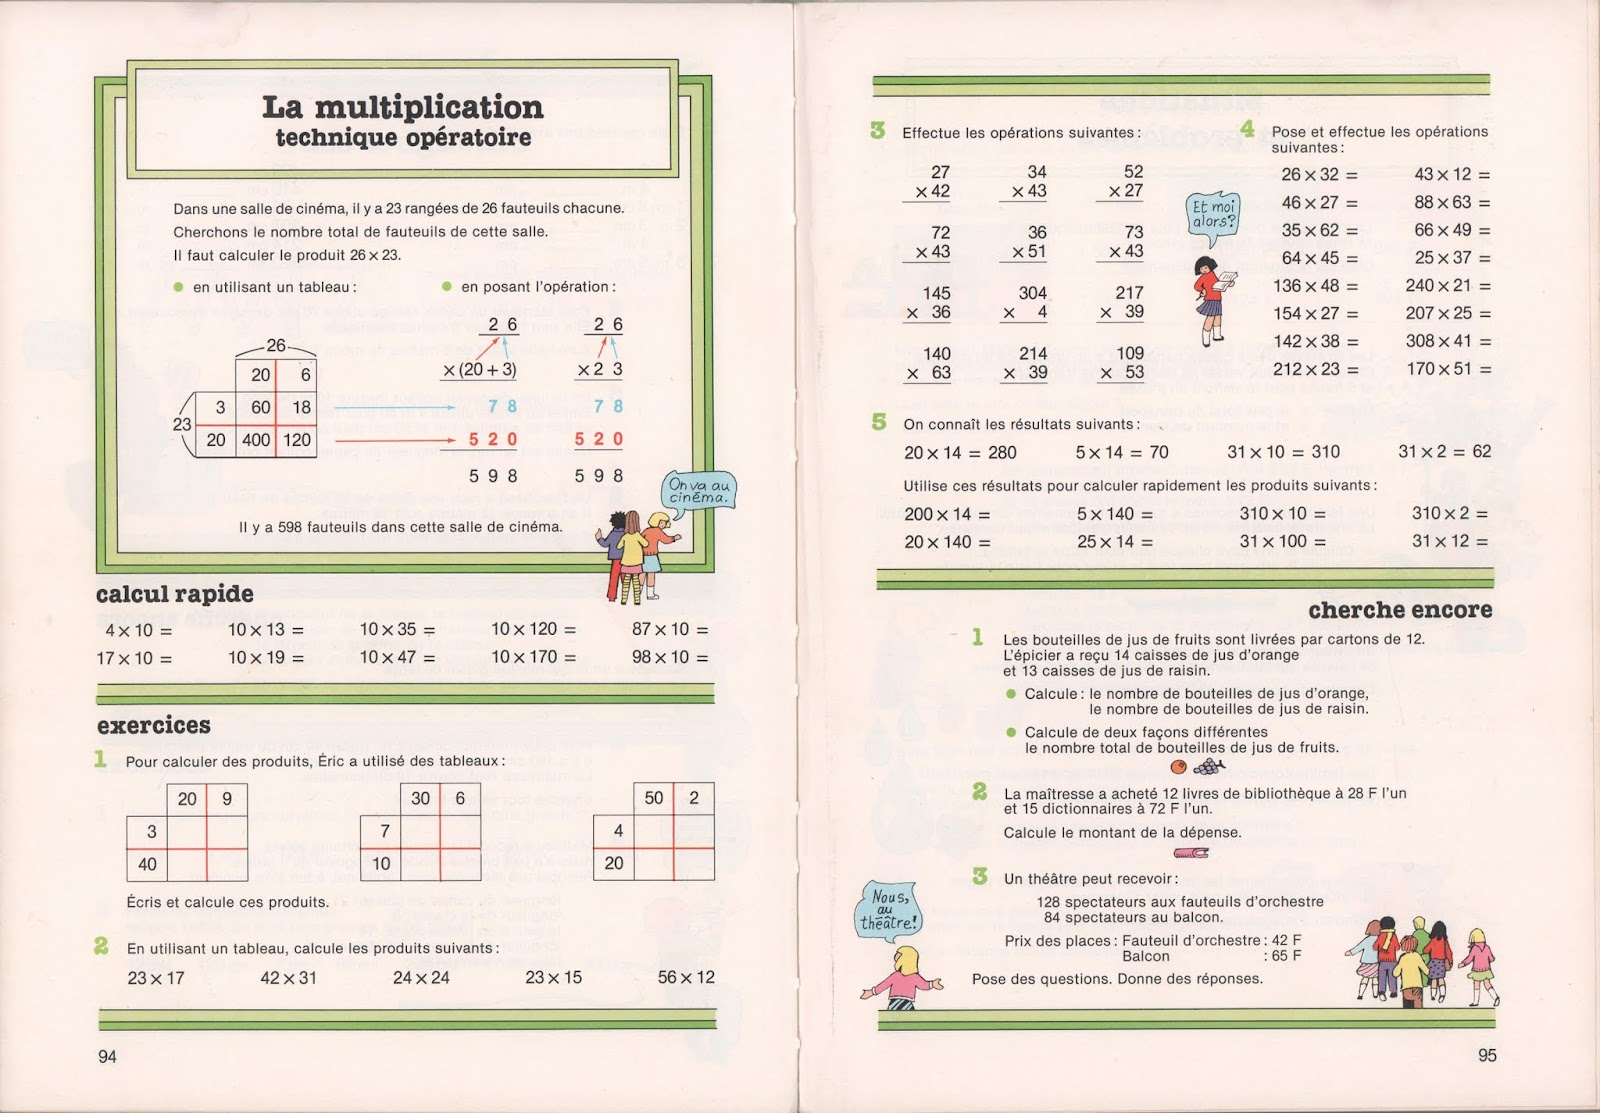 Jeux tables de multiplication CE1 CE2 CM1 Multiplicator